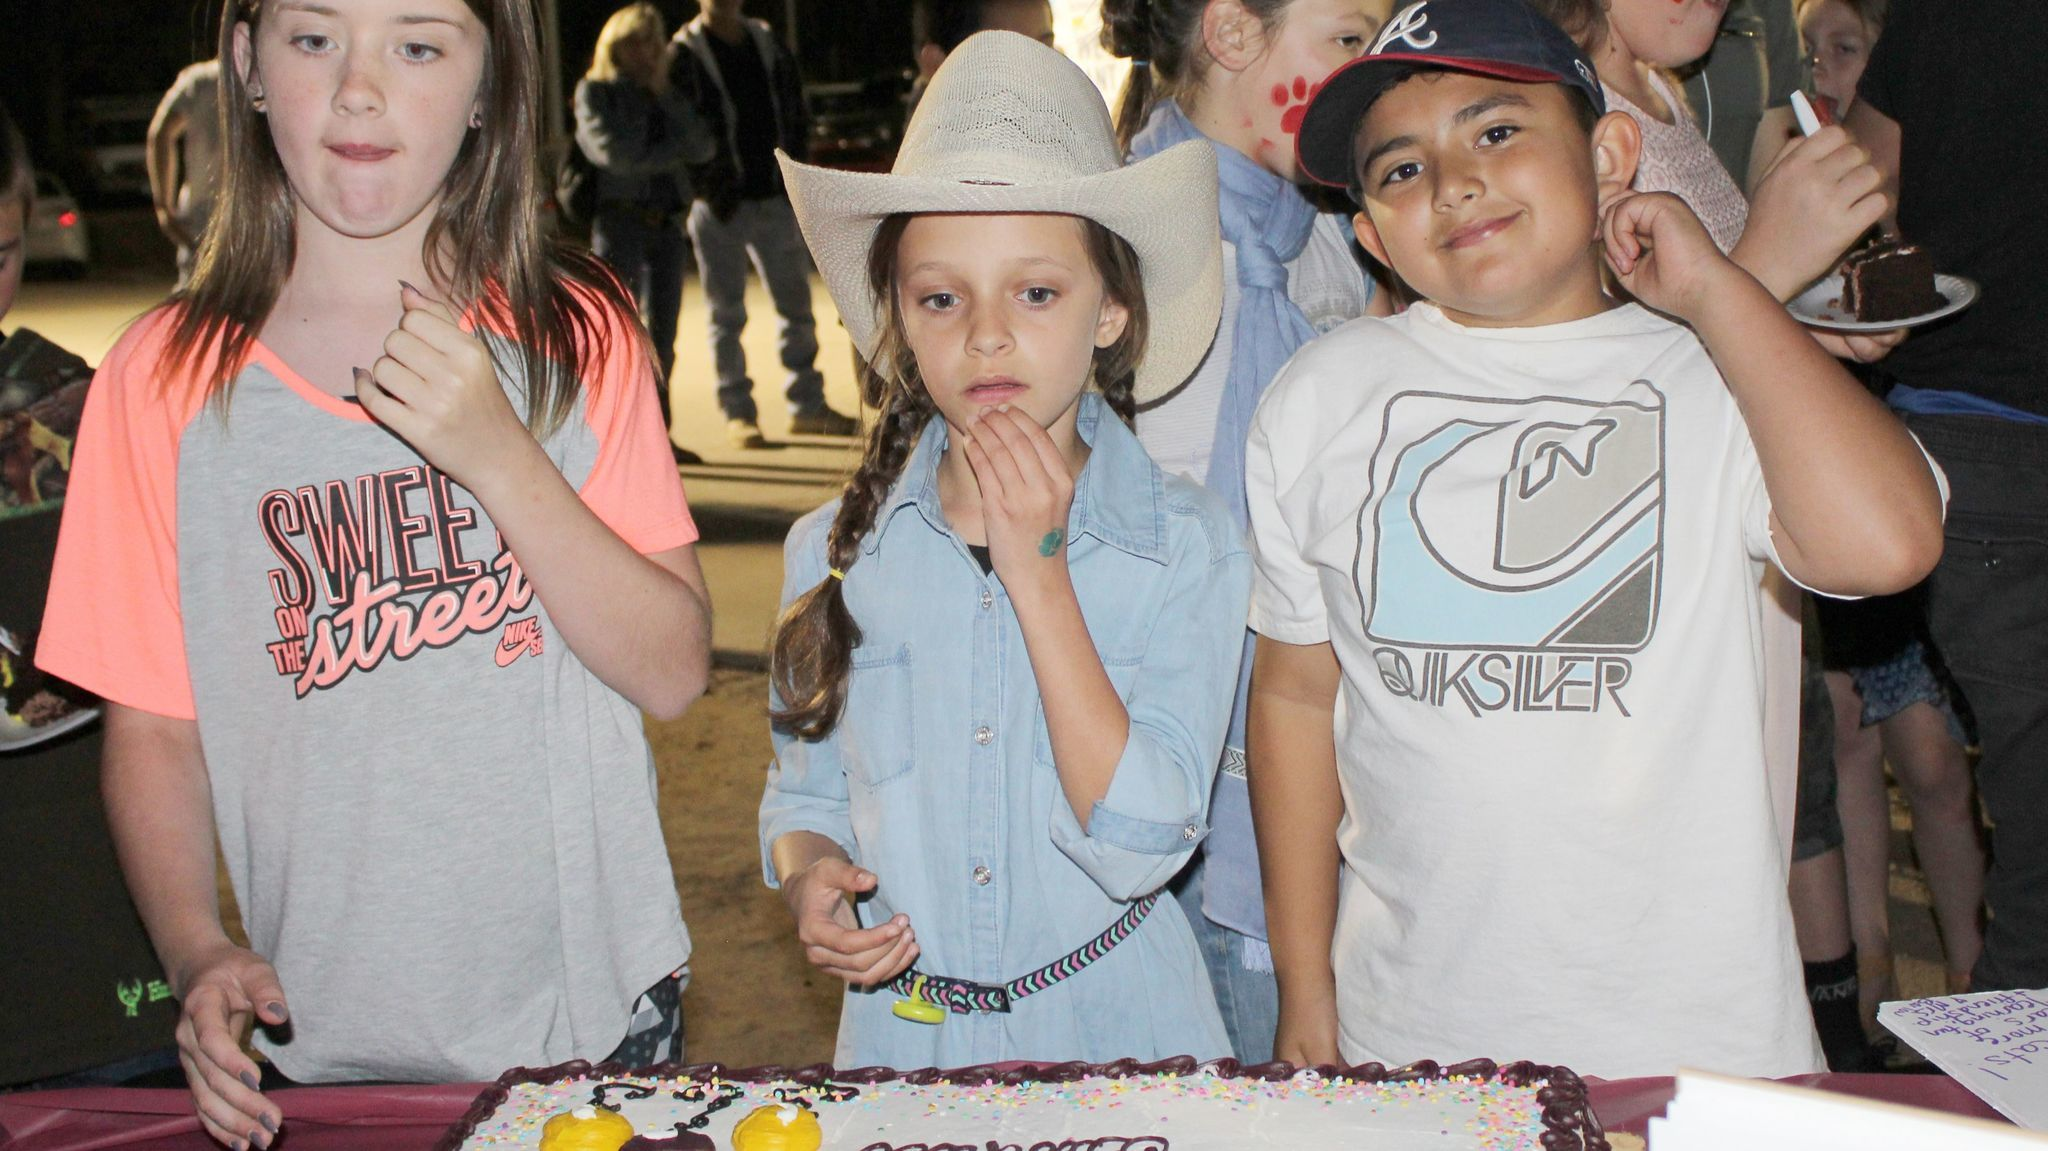 Fourth-graders Josie Harmon, Kayla Del Real, and George Ortega eye one of the Barnett birthday cakes before receiving their piece.